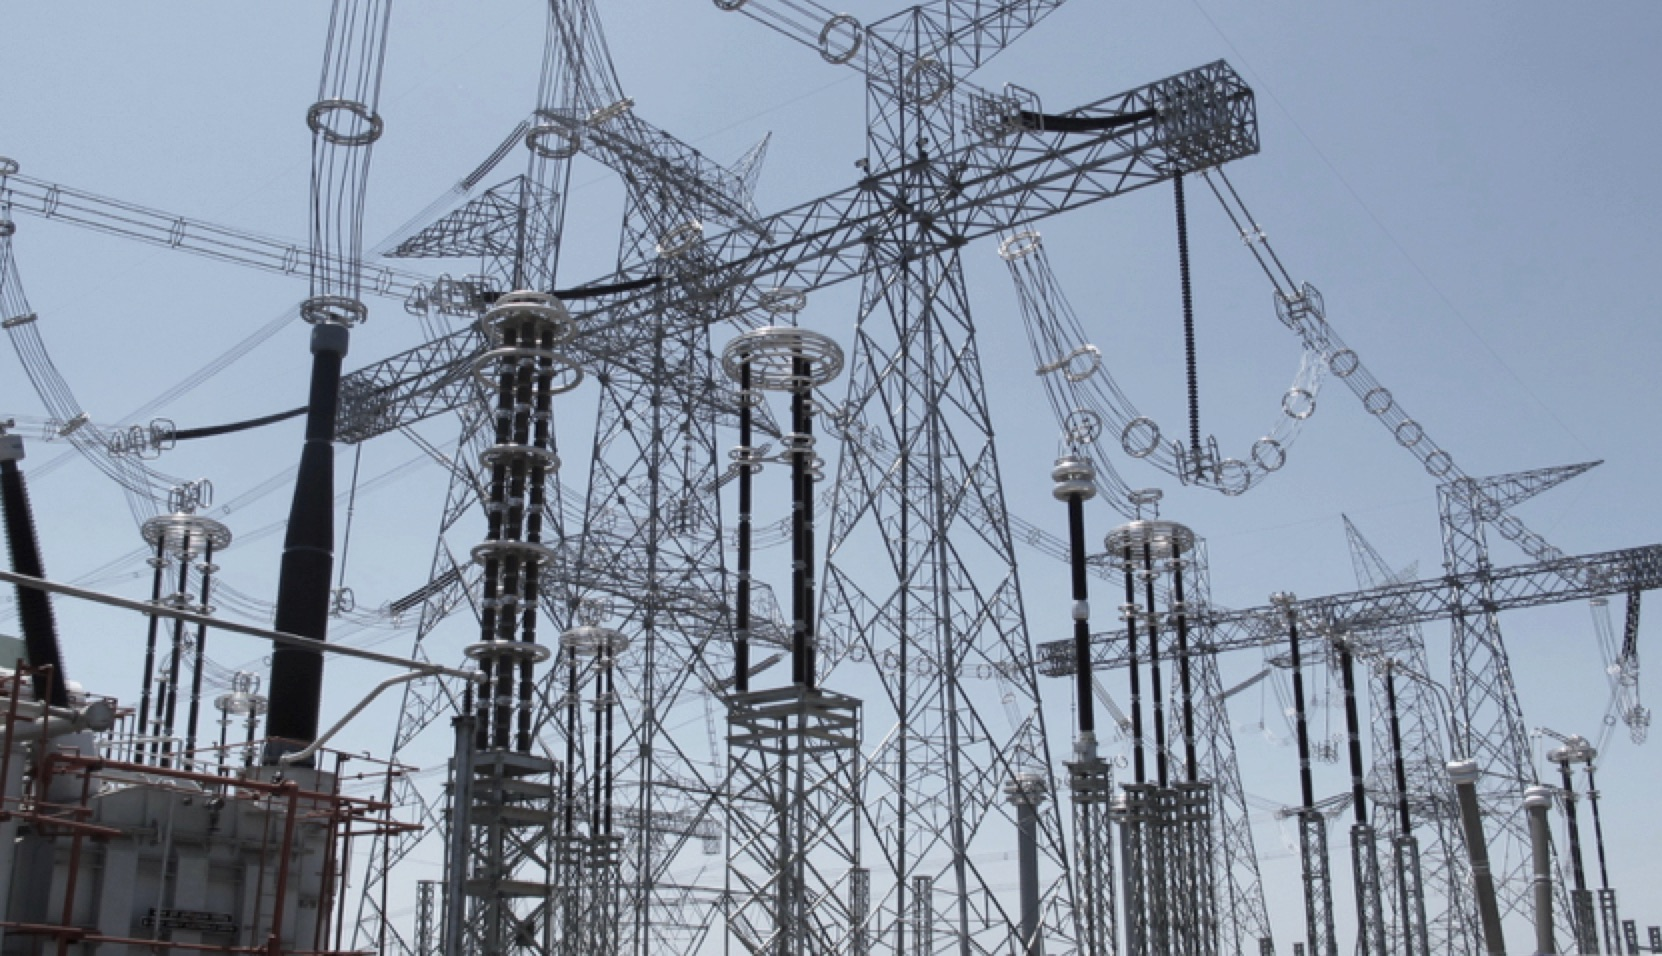 Arrester Technology: Lessons Learned, Developments to Watch Arresters at UHV test station in India